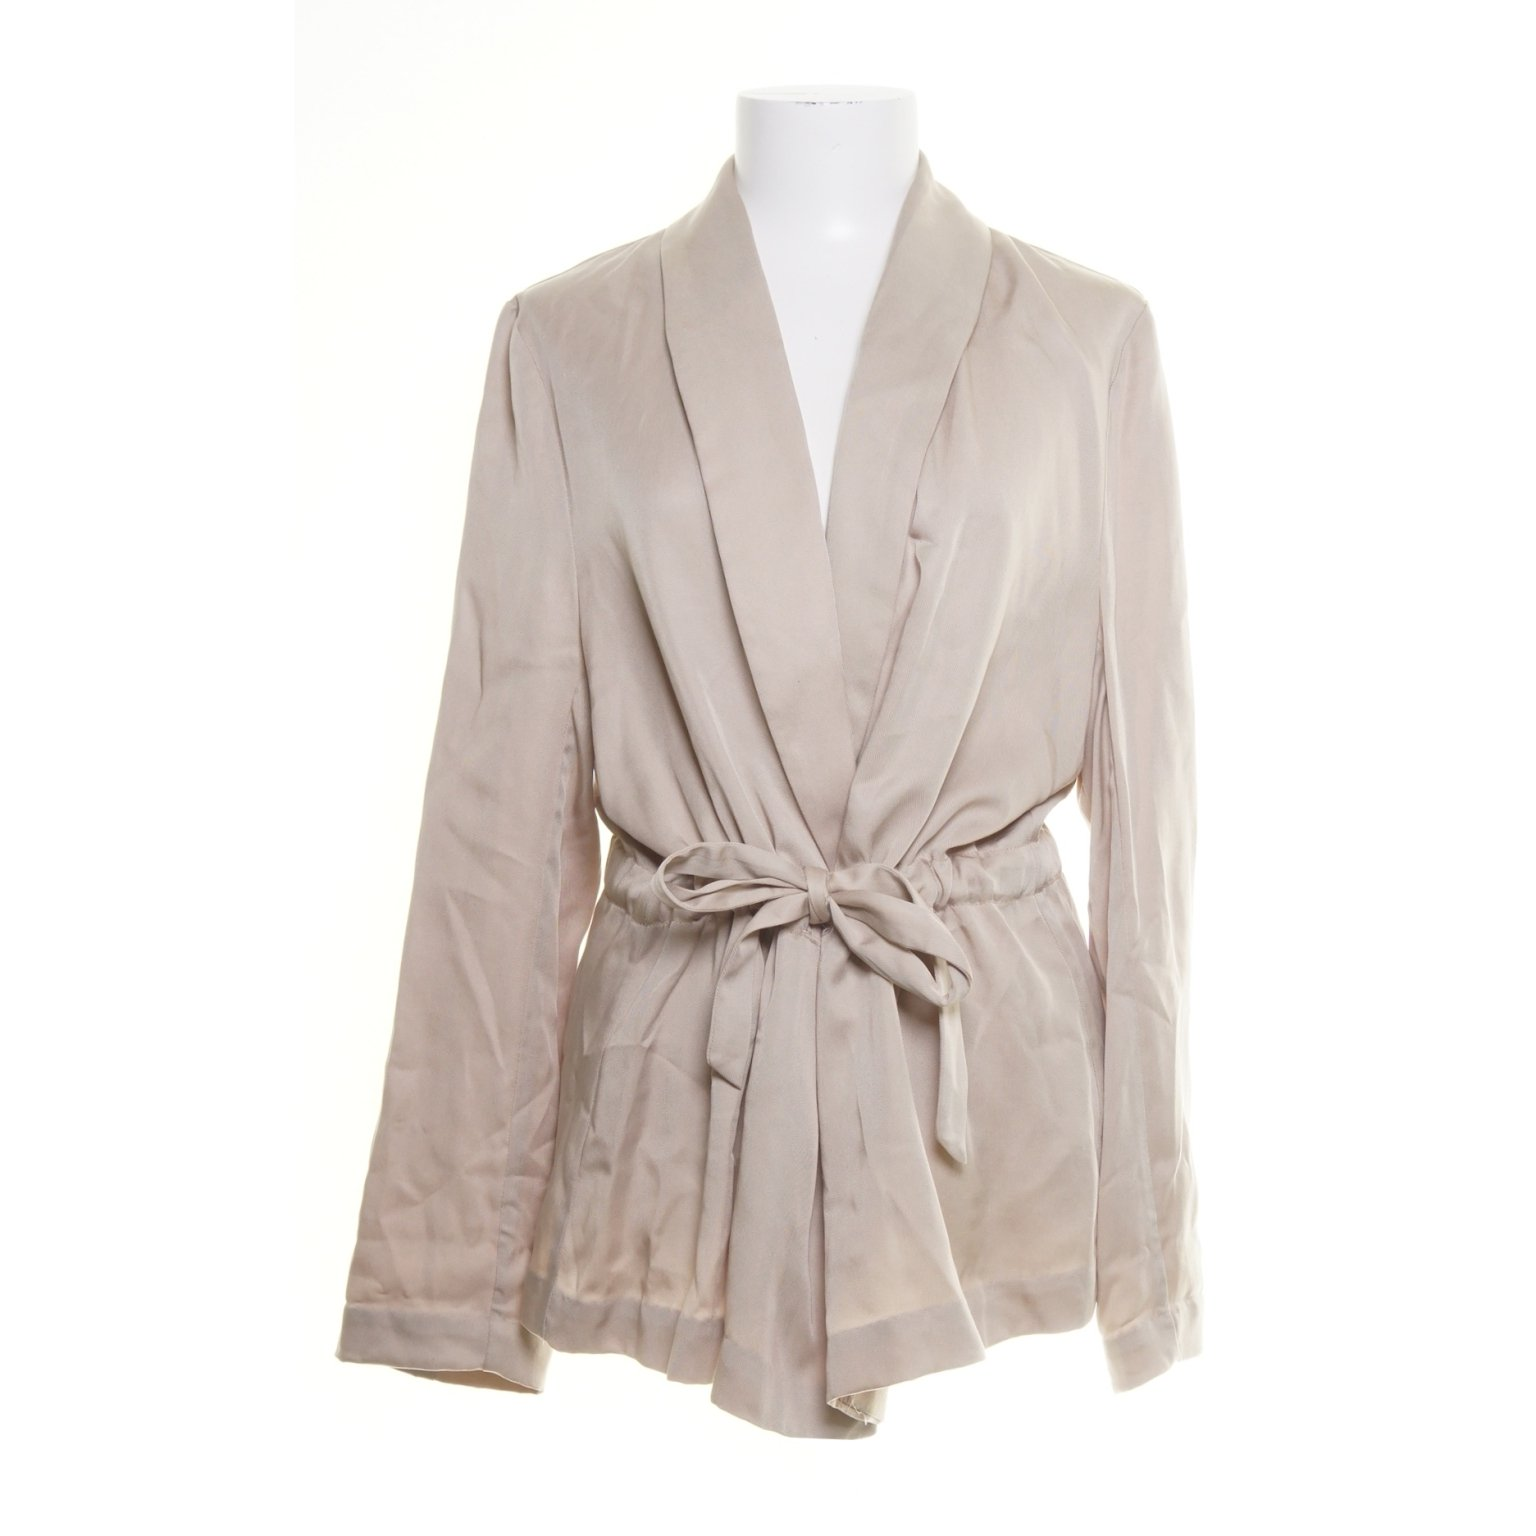 H&M Conscious Collection, Kavaj, Strl: 44, Beige